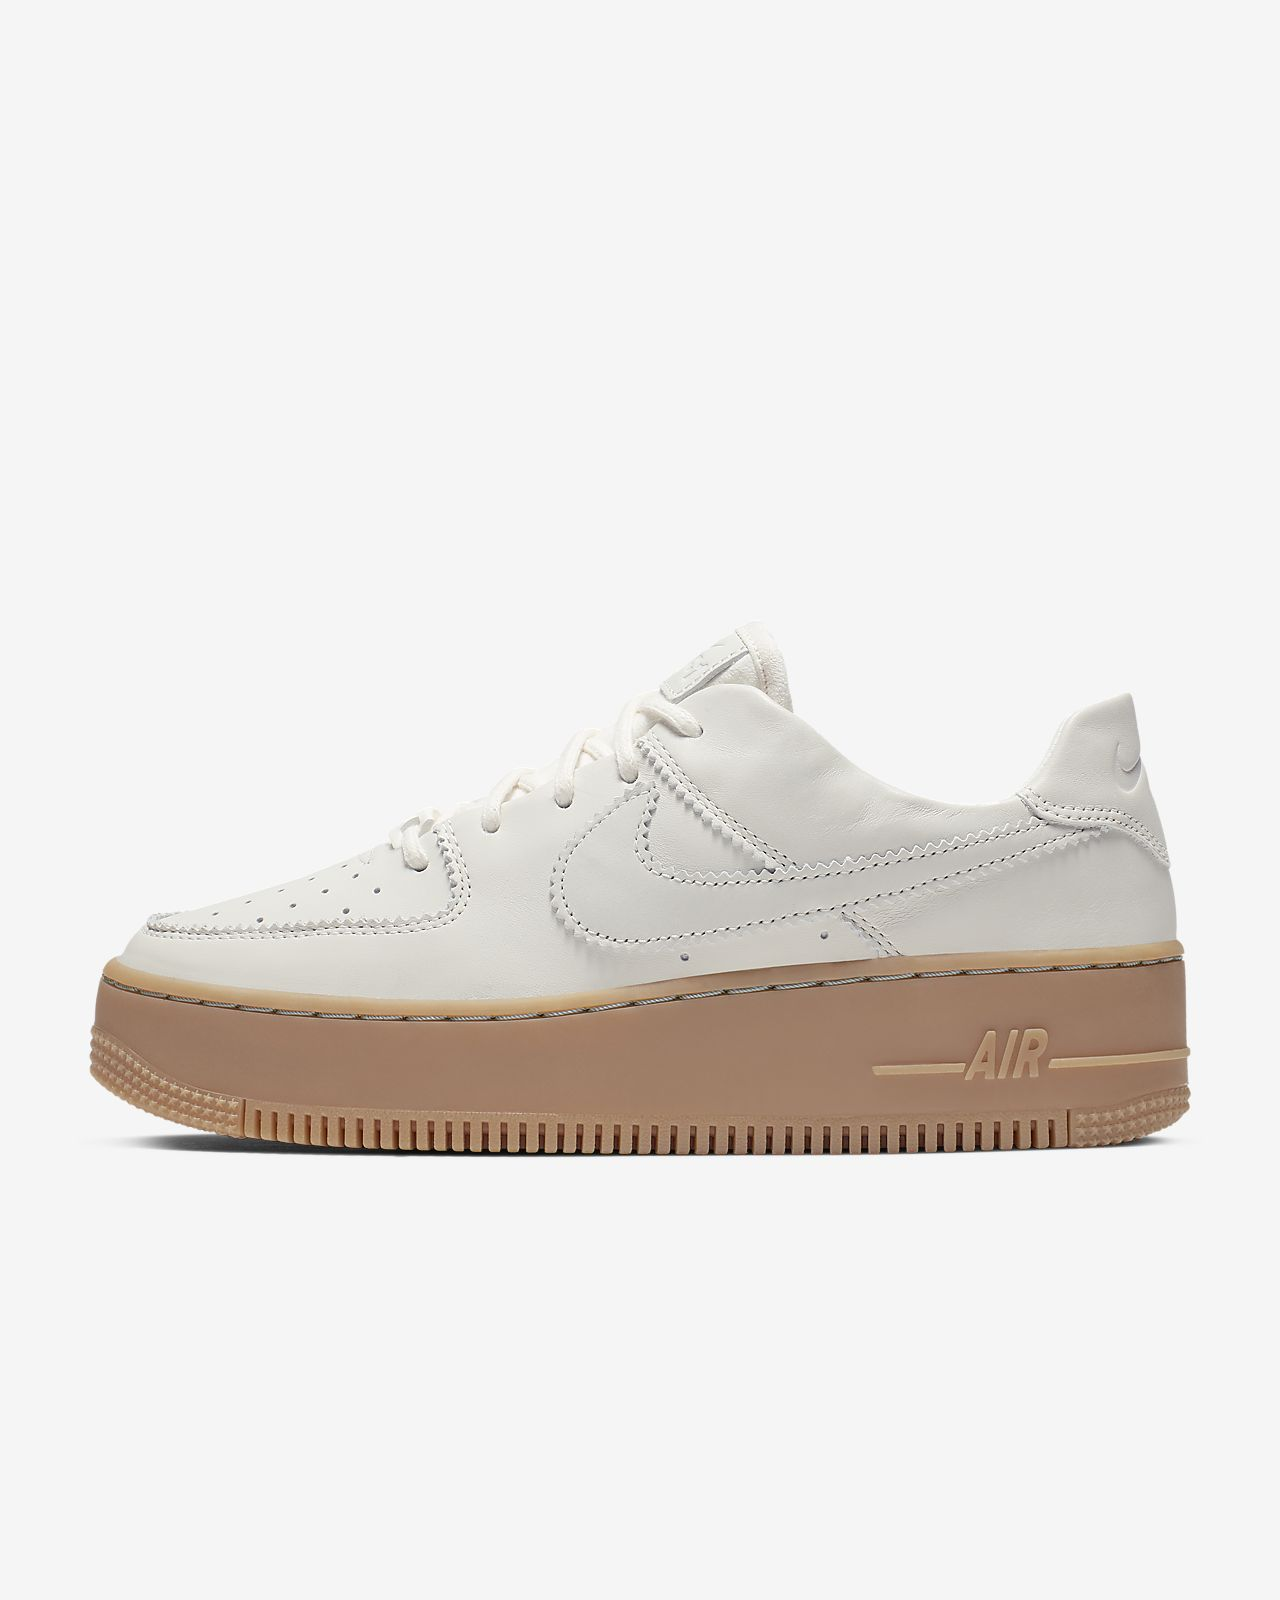 Nike Air Force 1 Sage Low LX női cipő